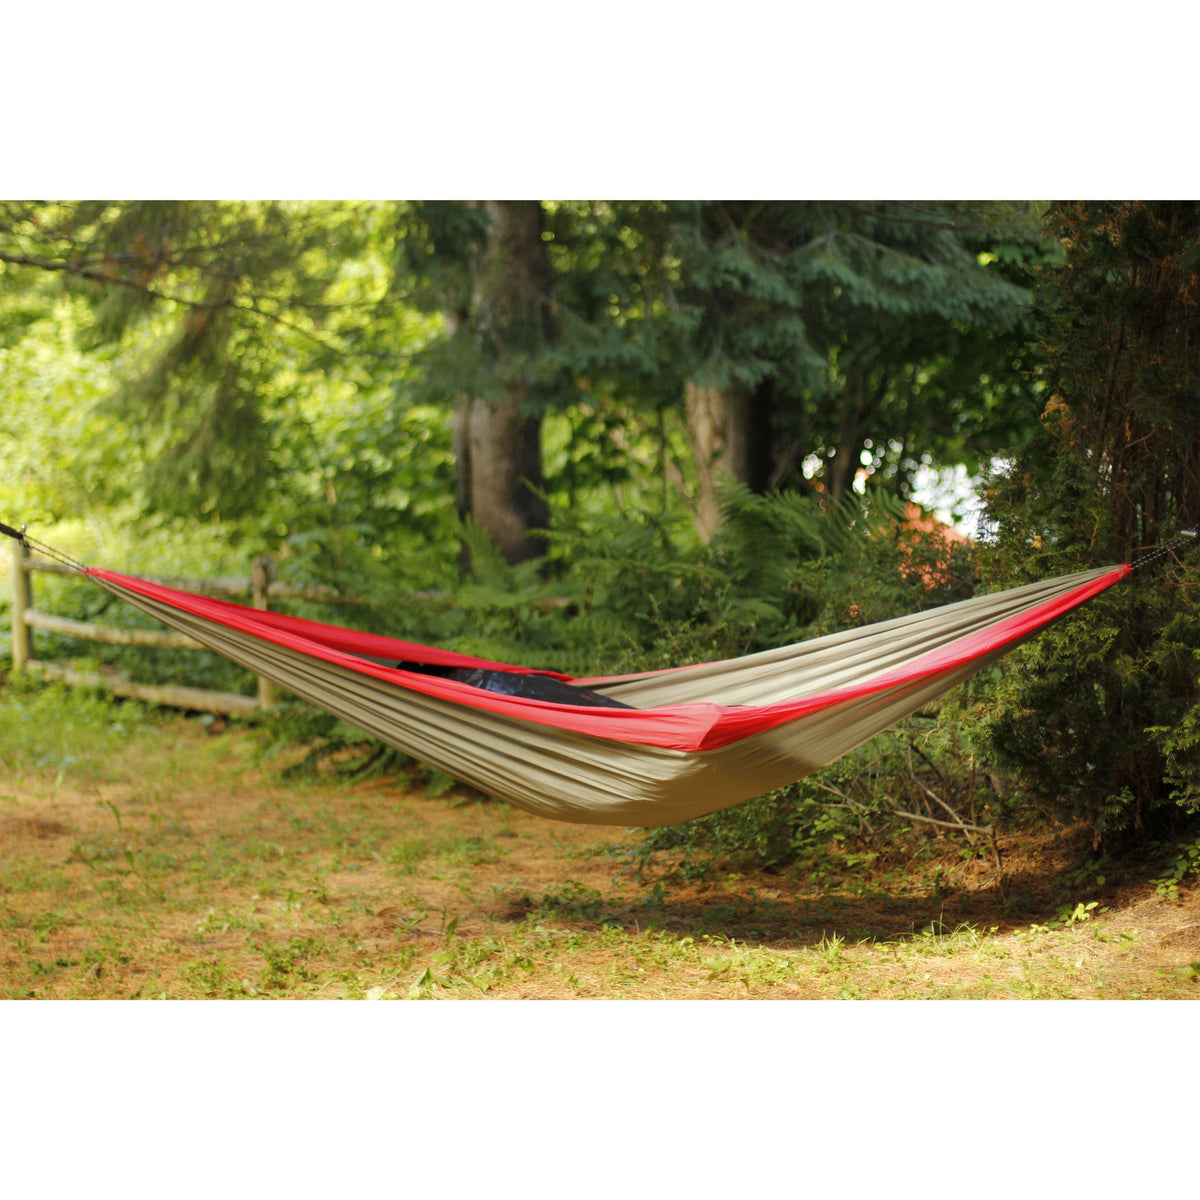 Easy Traveller Hammock, from Byer of Maine